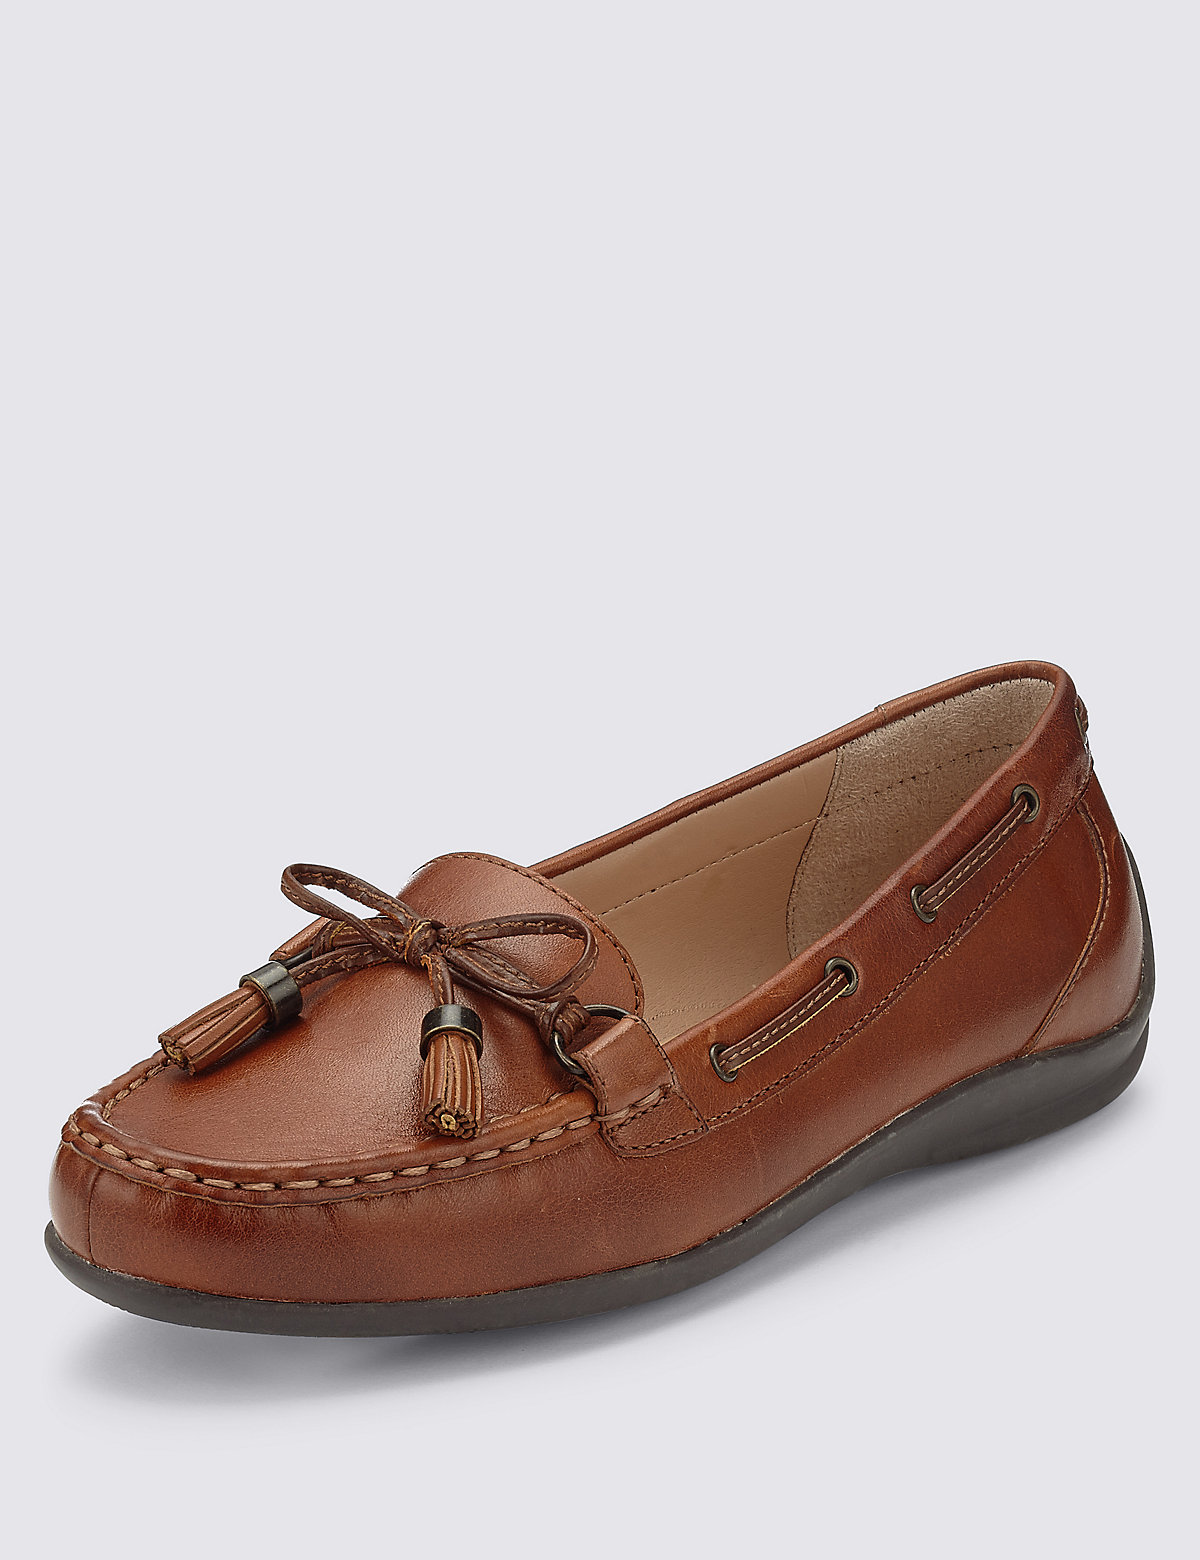 Footglove Leather Tassel Boat Shoes with Footglove